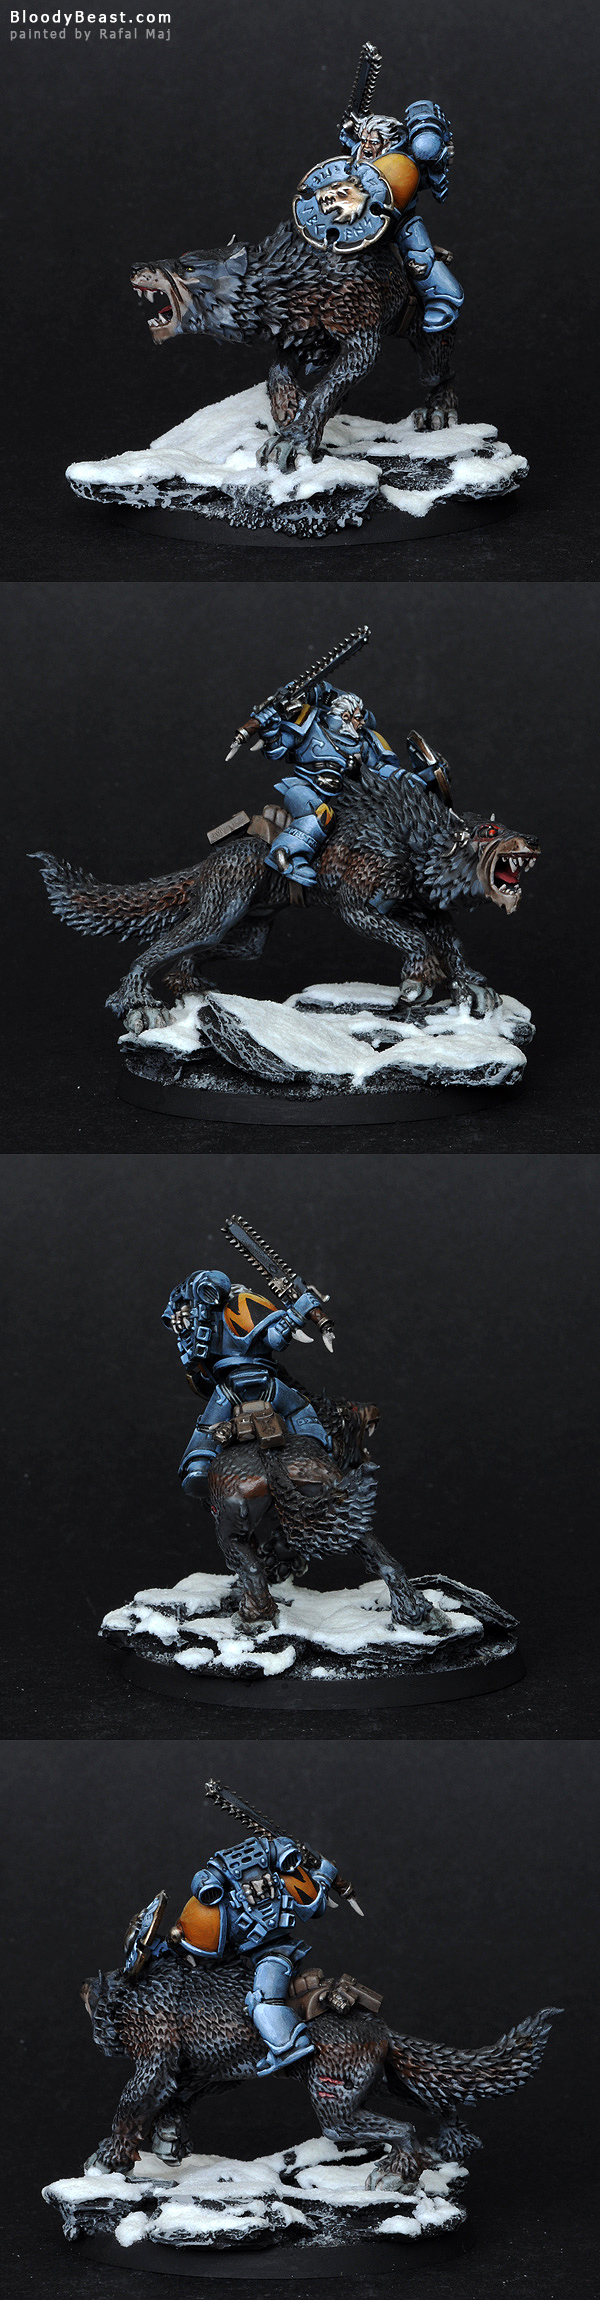 Space Wolves Thunderwolf painted by Rafal Maj (BloodyBeast.com)